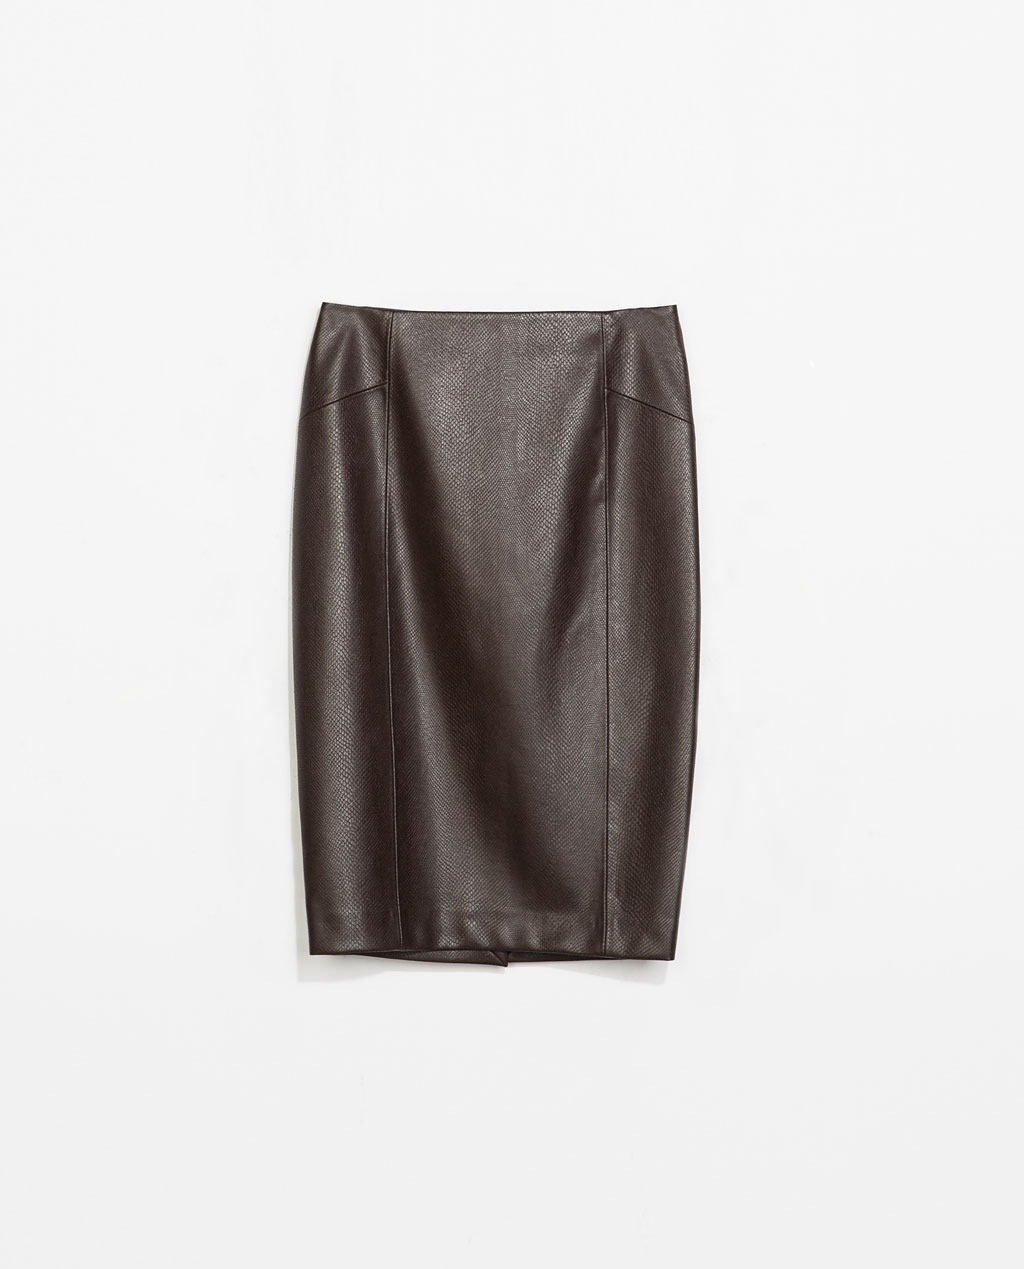 Snakeskin Pencil Skirt - pattern: plain; style: pencil; fit: tailored/fitted; waist: high rise; predominant colour: black; occasions: casual, evening, work, creative work; length: on the knee; fibres: viscose/rayon - 100%; texture group: leather; pattern type: fabric; season: s/s 2014